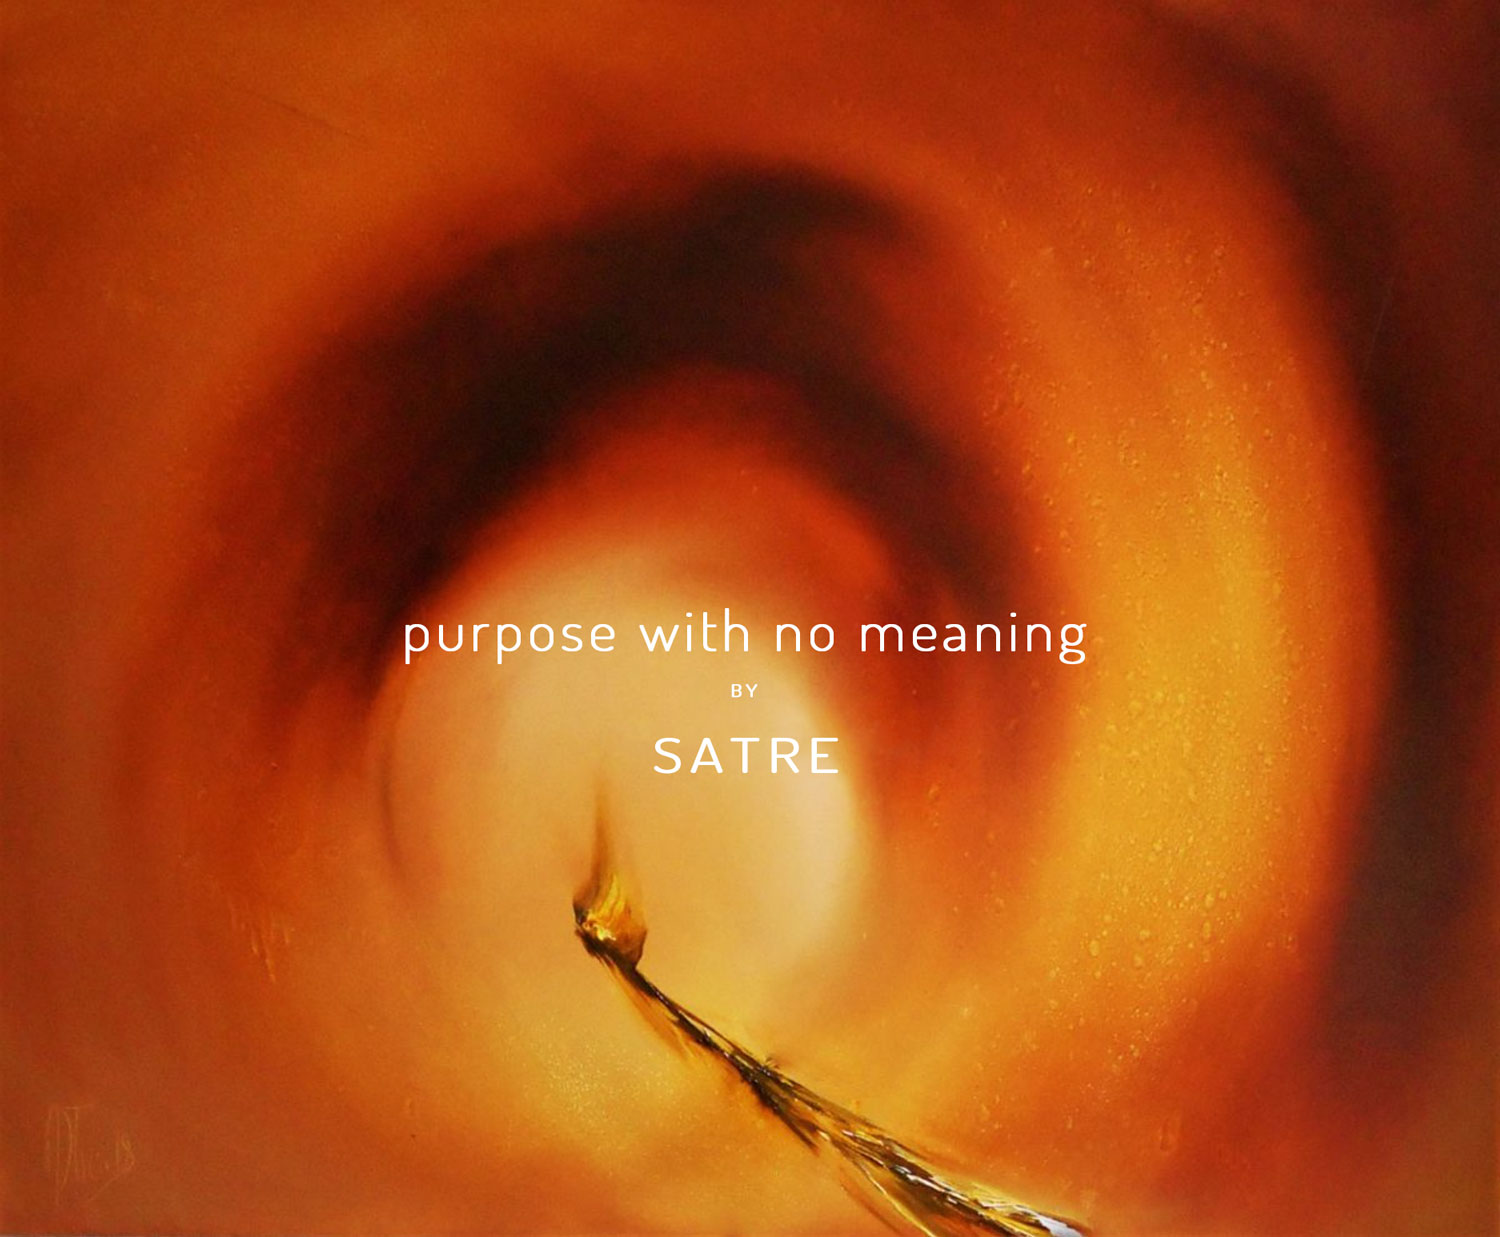 Purpose-WIth-No-Meaning-front-1500-geir-satre.jpg